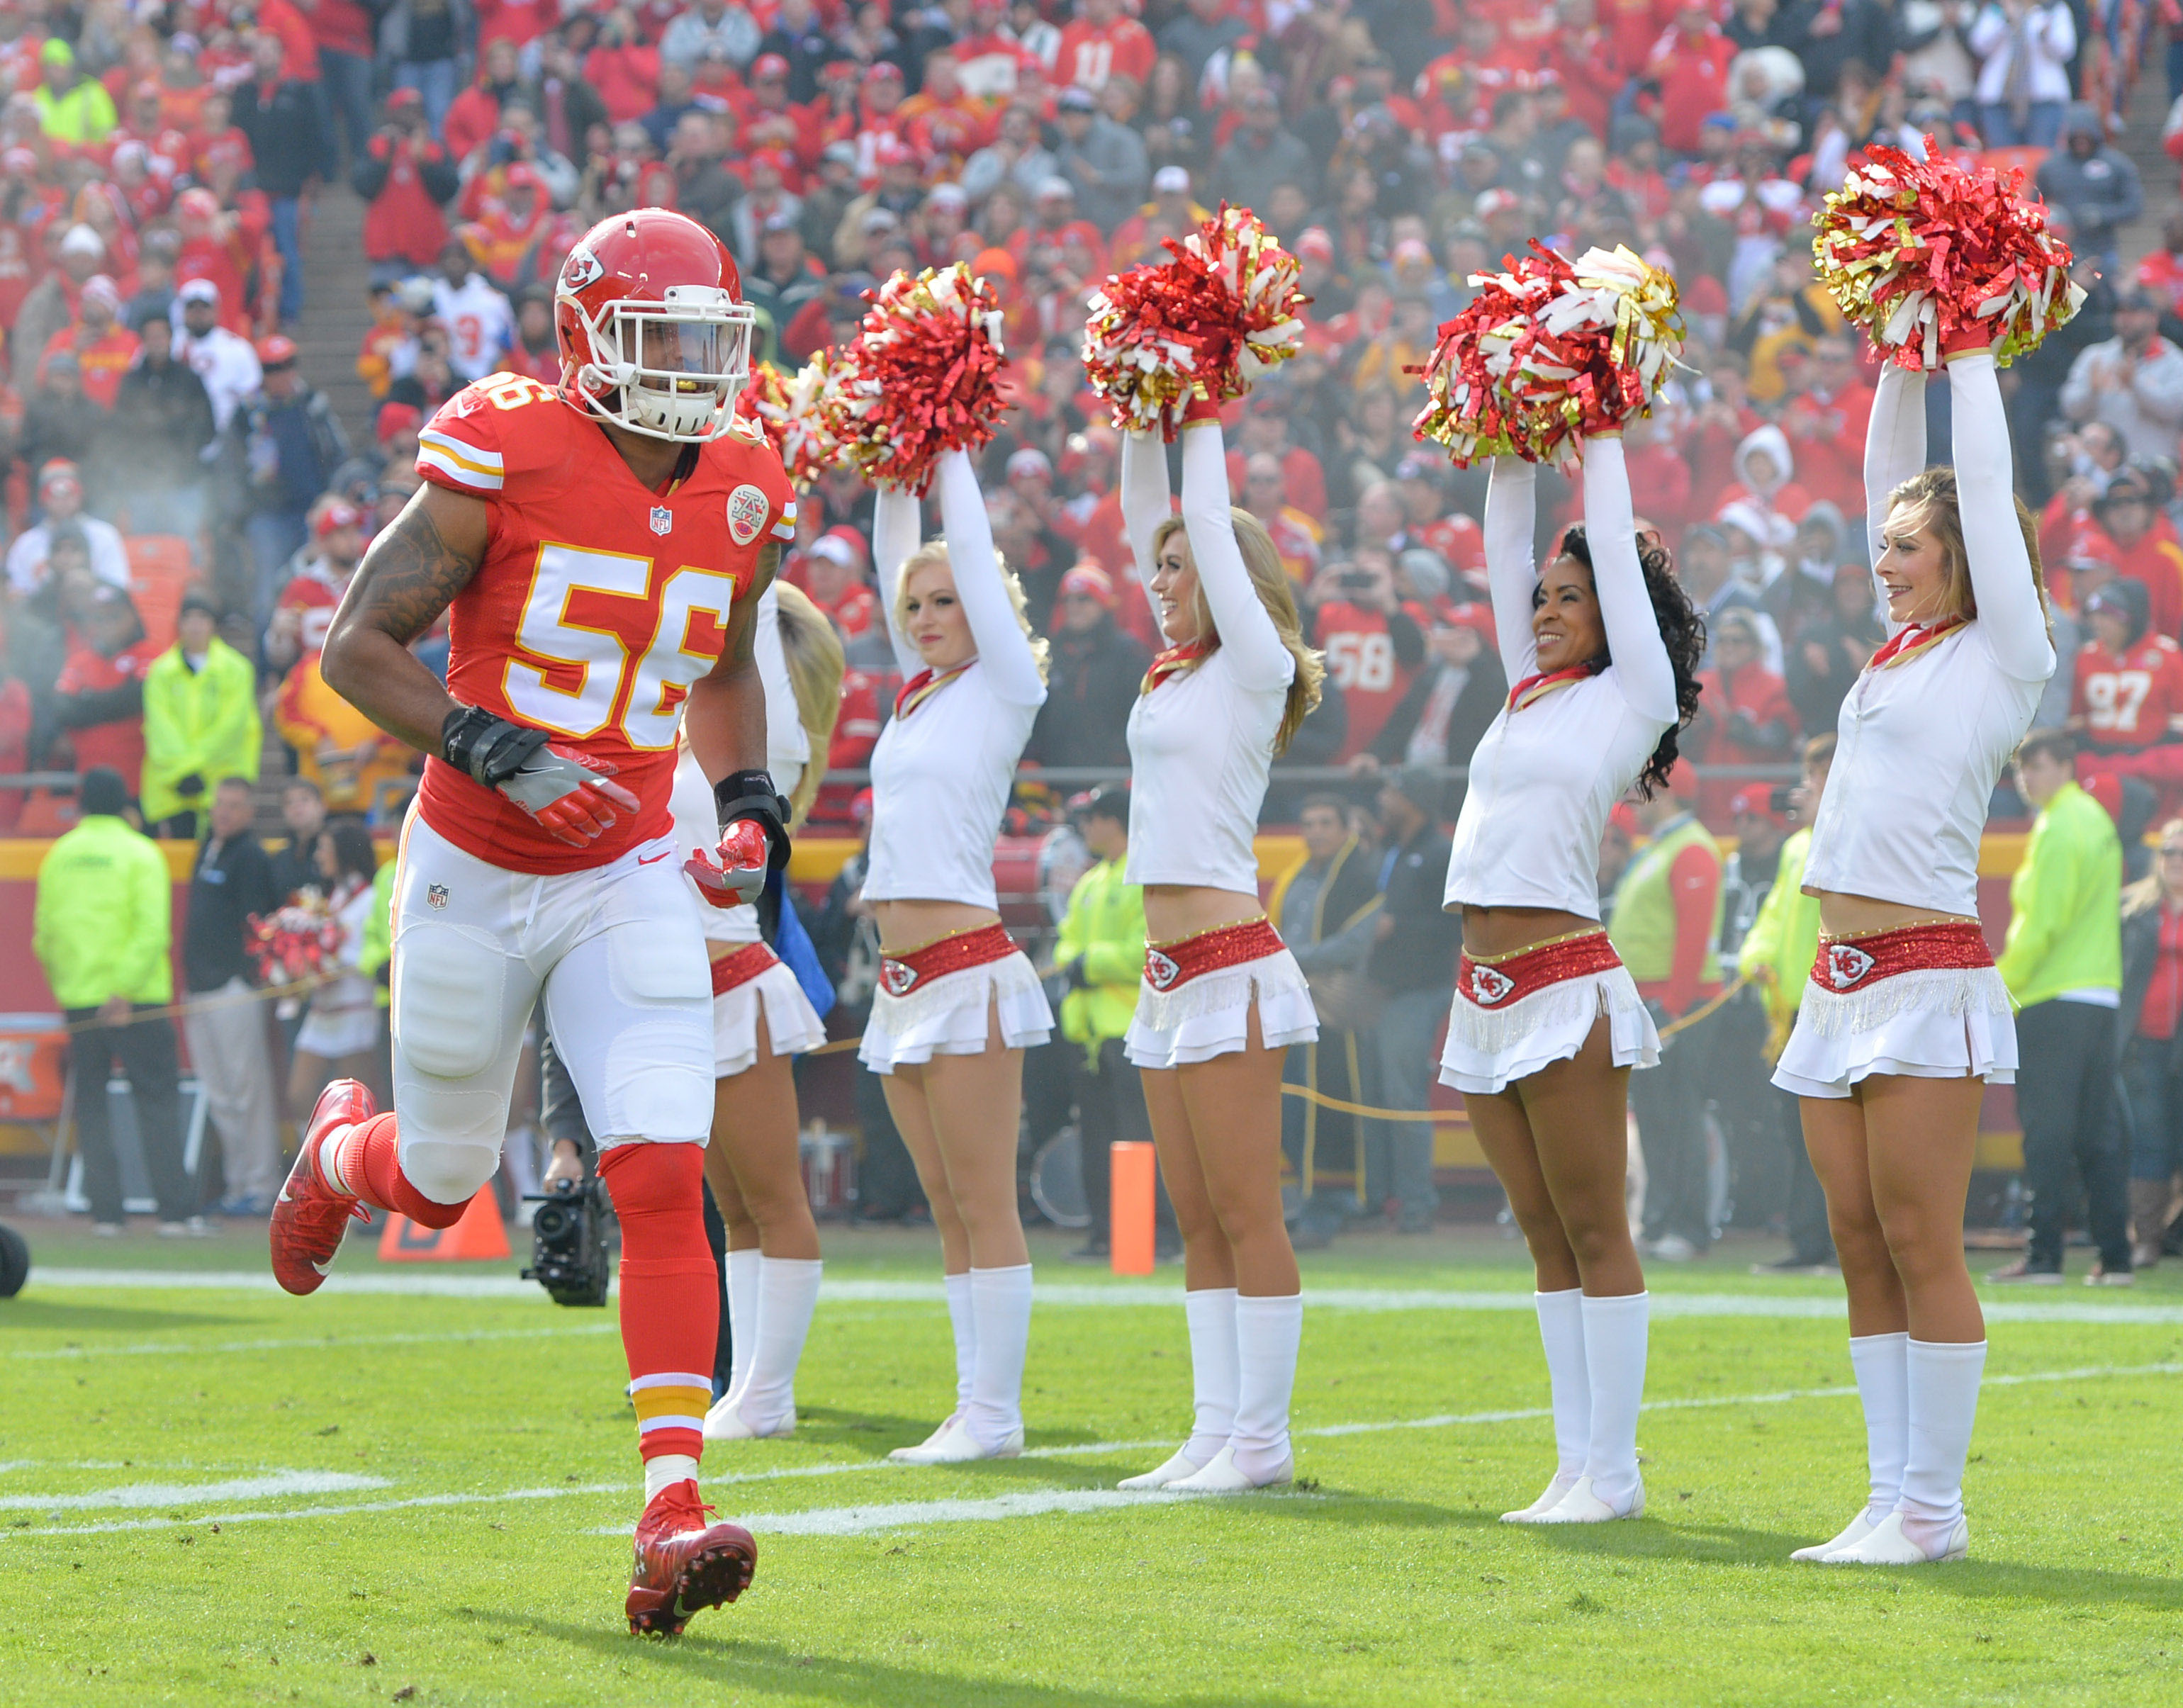 9705115-nfl-tampa-bay-buccaneers-at-kansas-city-chiefs